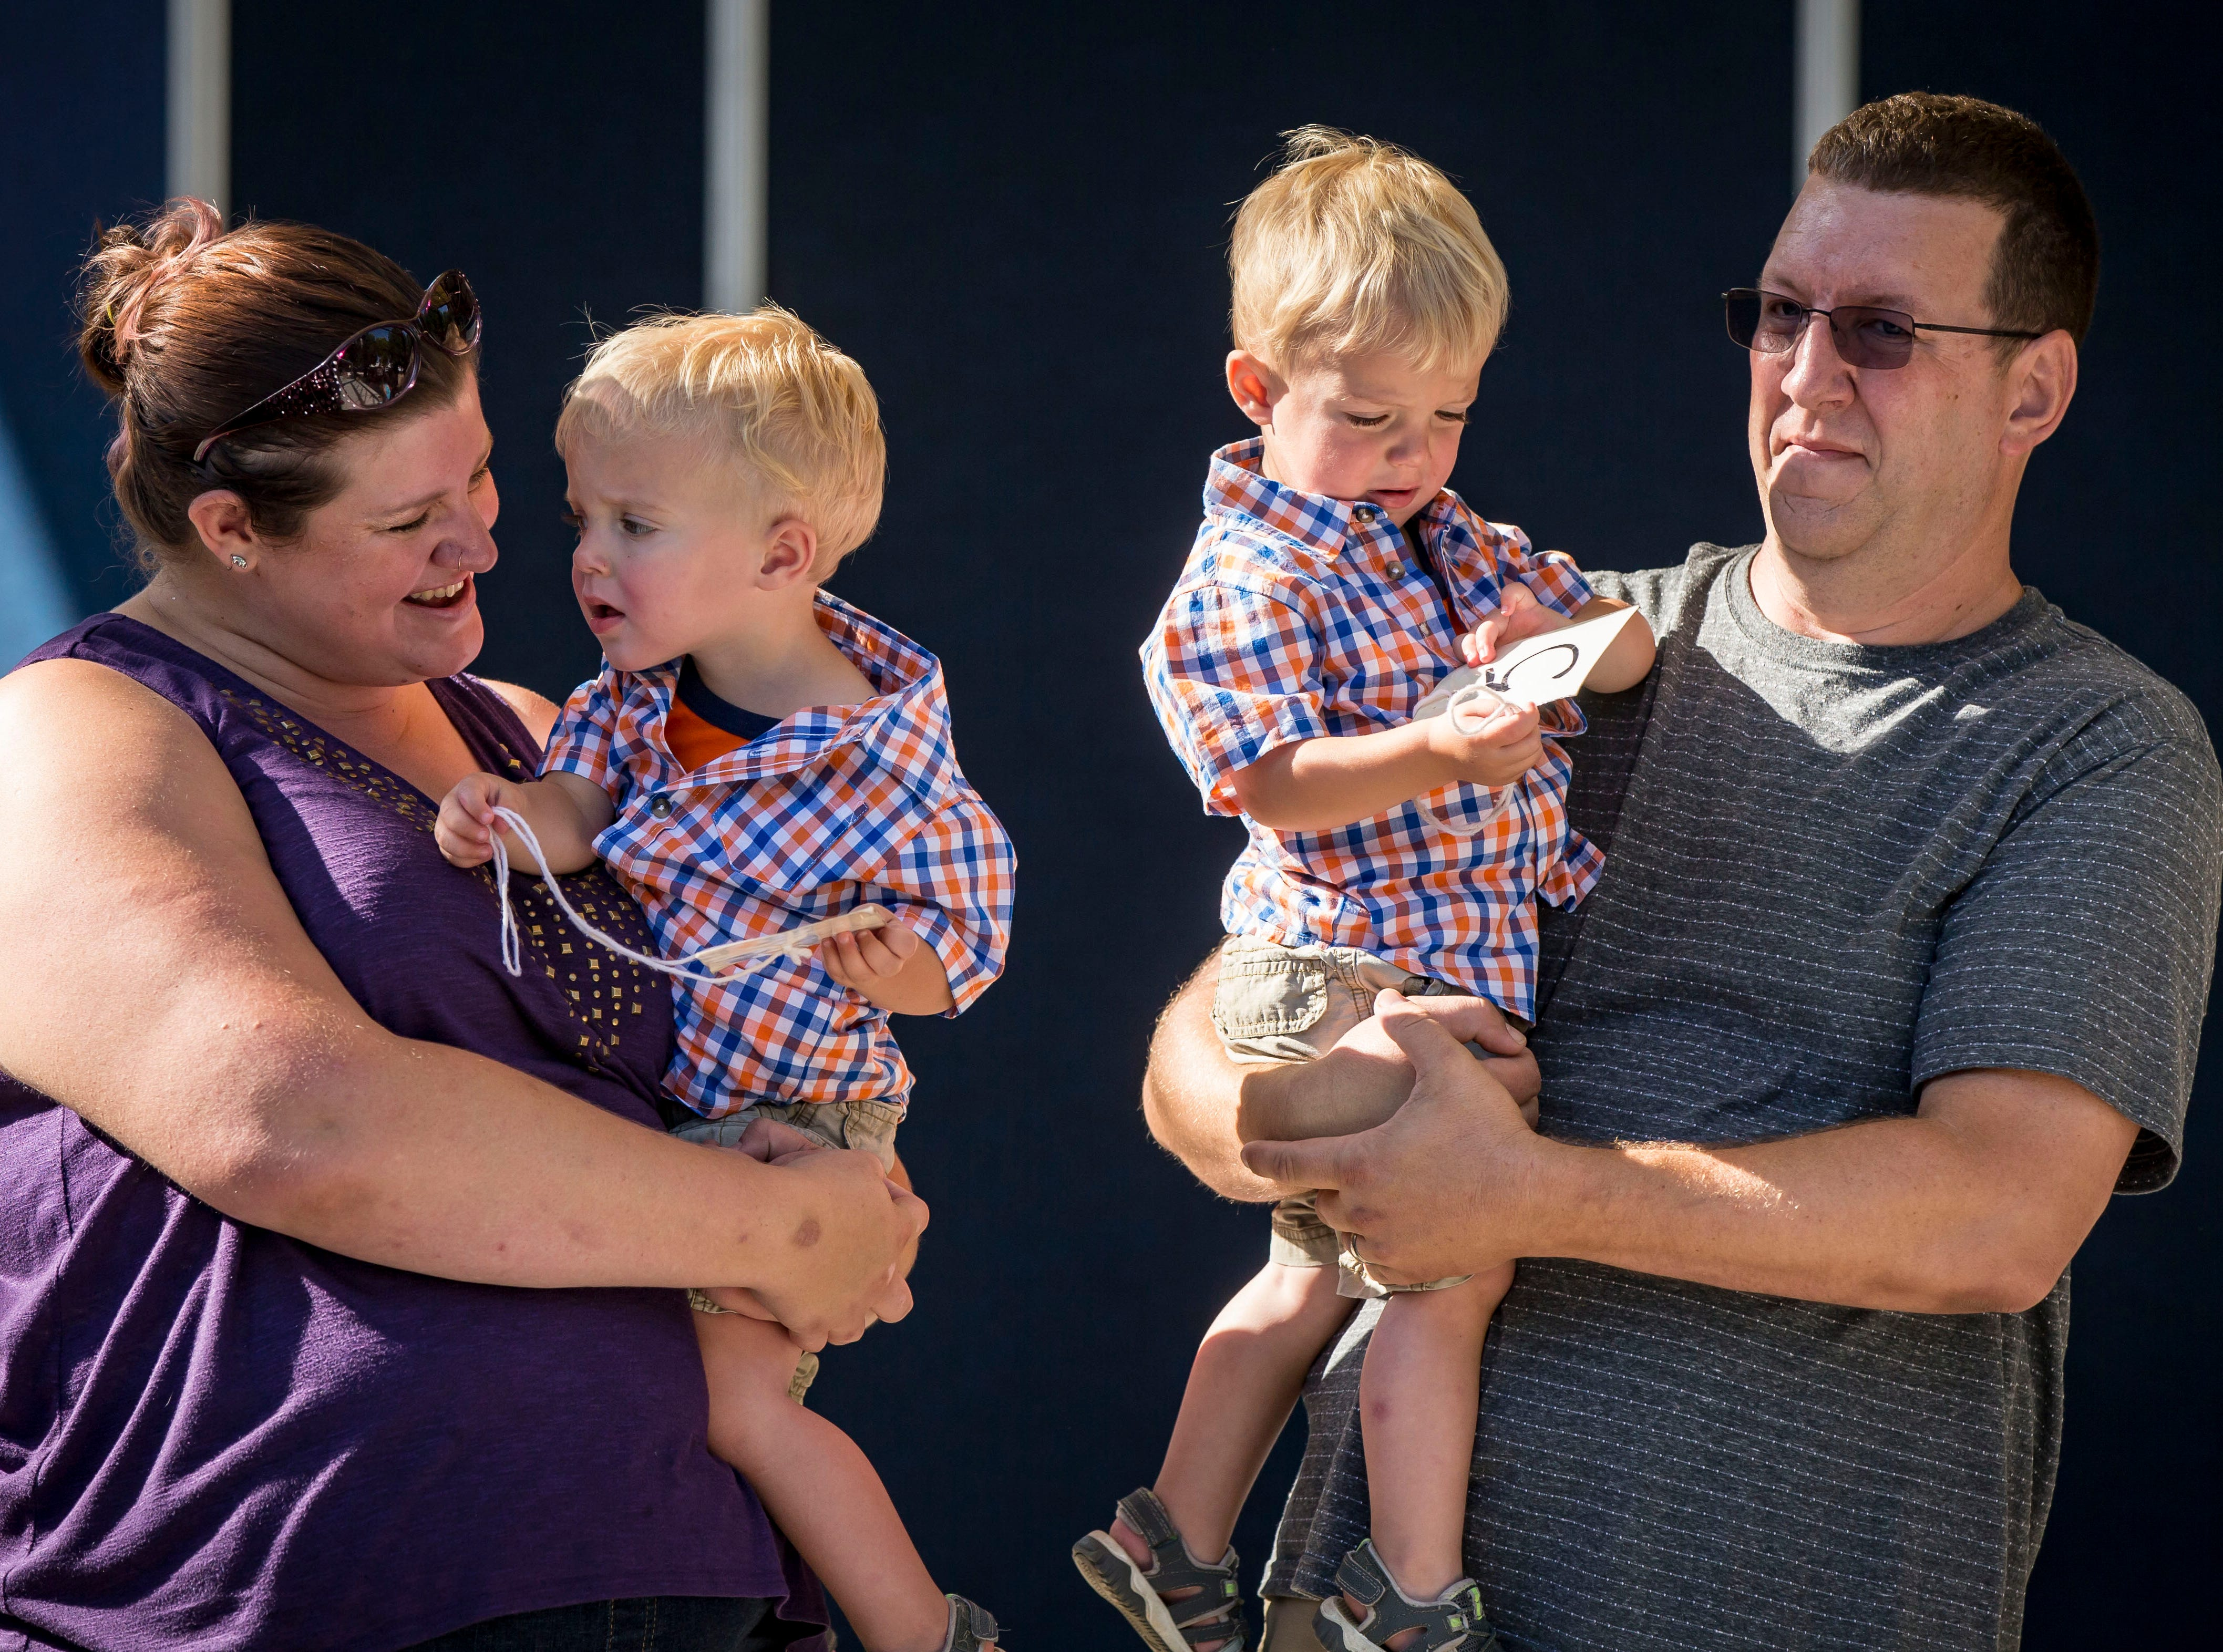 Benjamin,left, and Luke Hildal of Jewell wait with their parents Katie and Drew in the two-year-old category during the Twins, Triplets and More Contest on the Anne and Bill Riley Stage at the 2018 Iowa State Fair in Des Moines Thursday, Aug. 9, 2018.